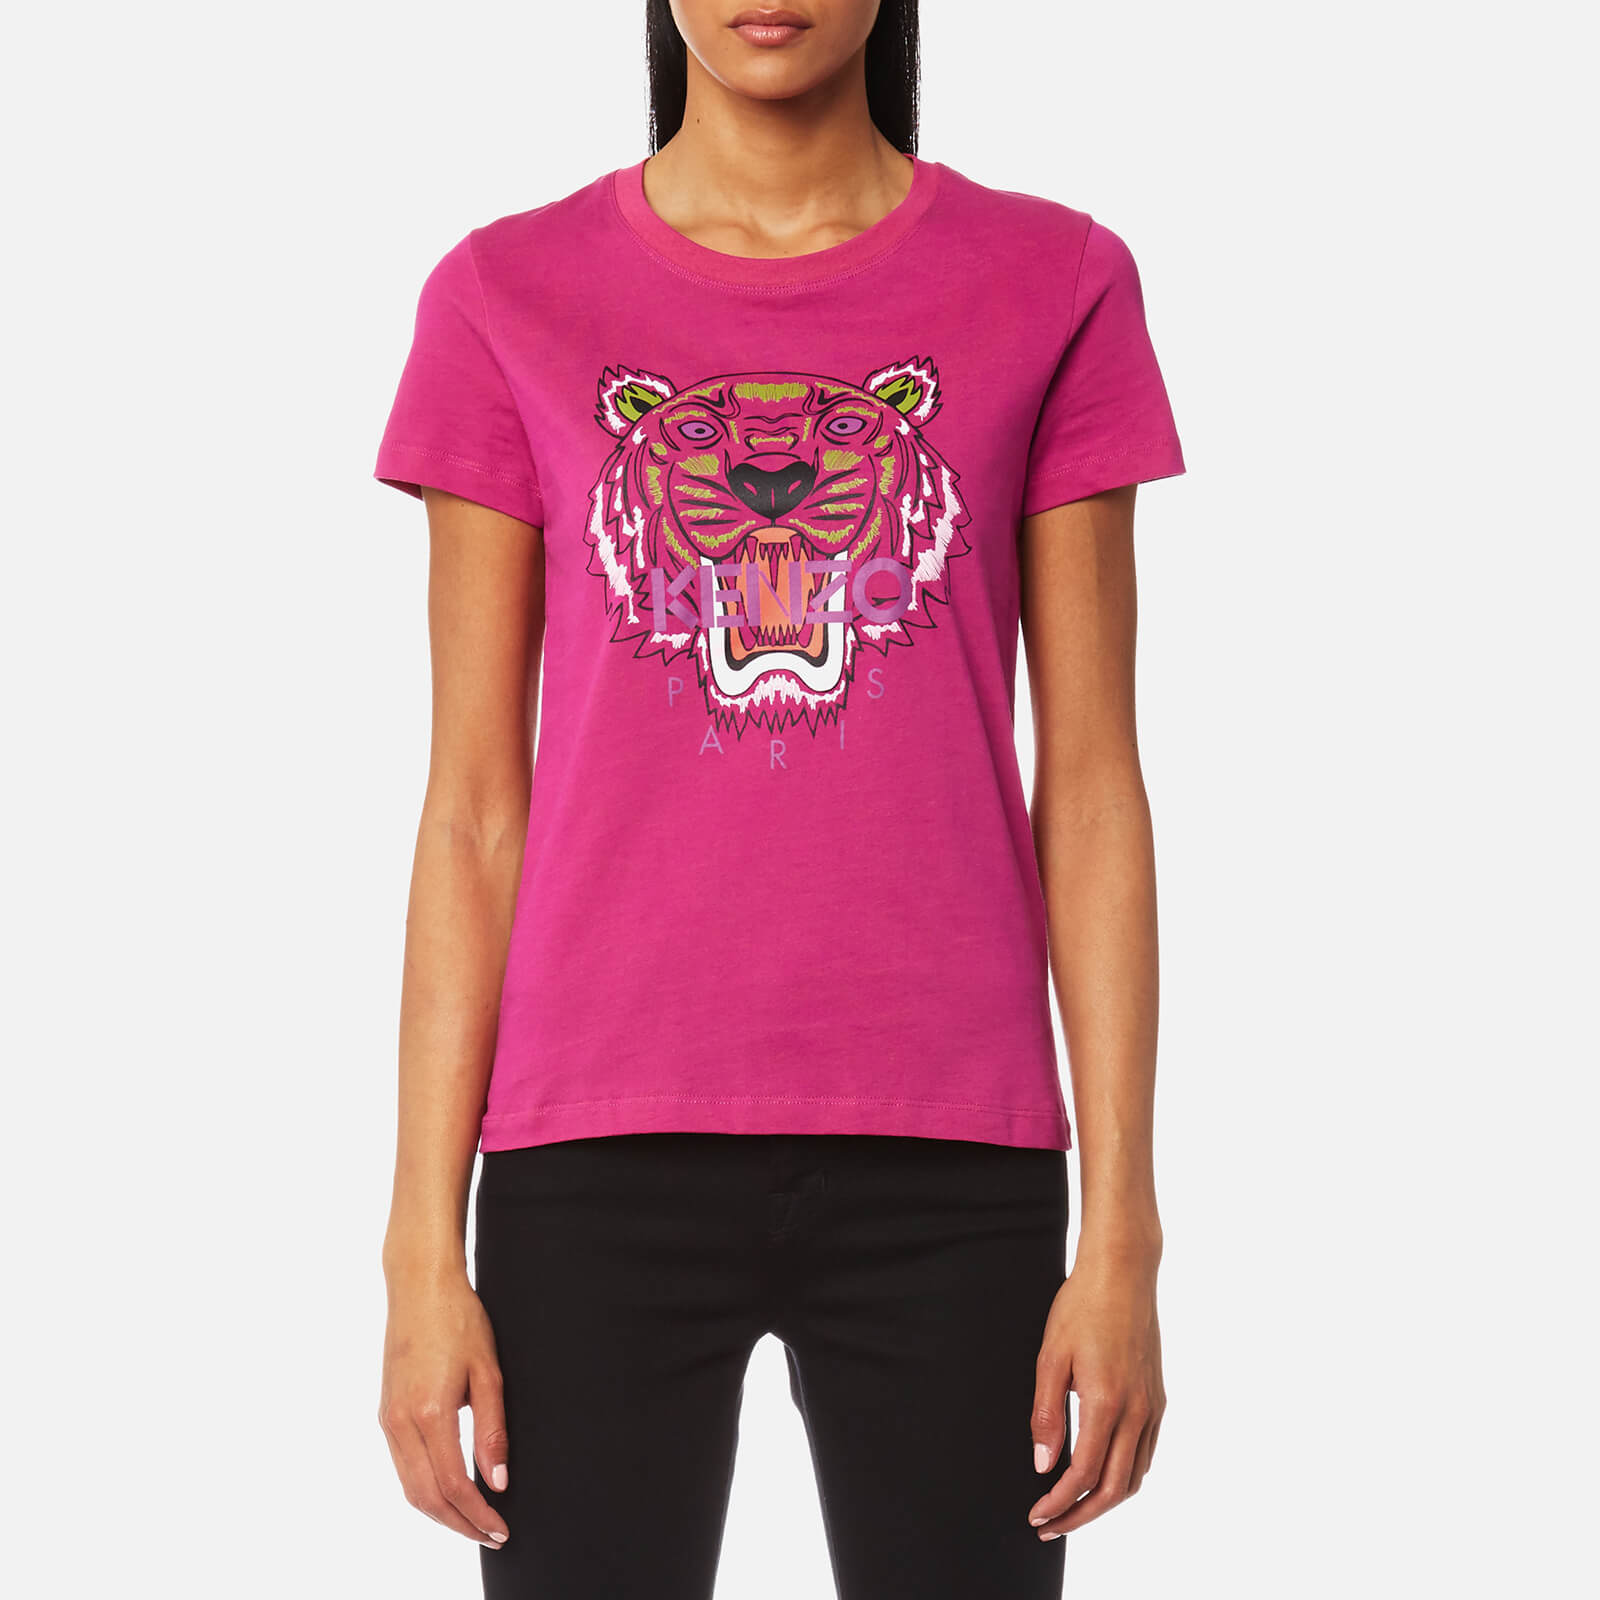 575377694 KENZO Women's Tiger Classic T-Shirt - Deep Fuchsia - Free UK Delivery over £ 50